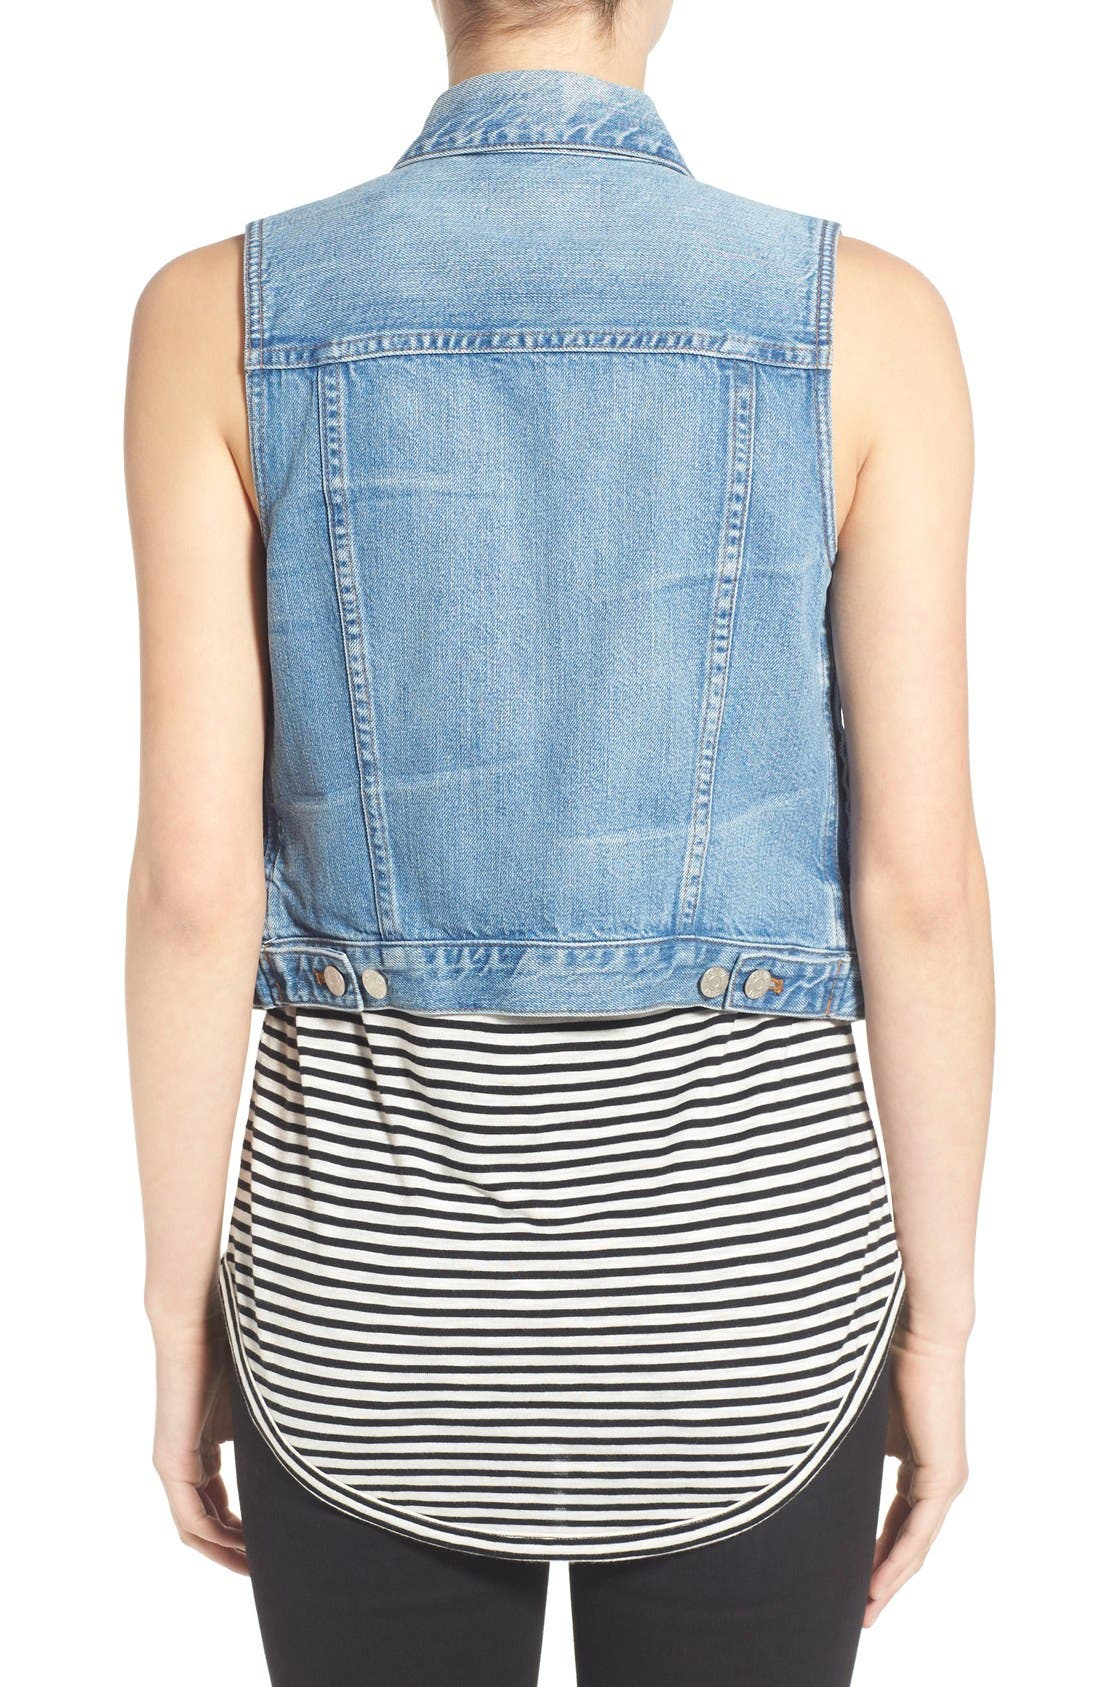 MADEWELL,                             Chest Pocket Denim Vest,                             Alternate thumbnail 6, color,                             400